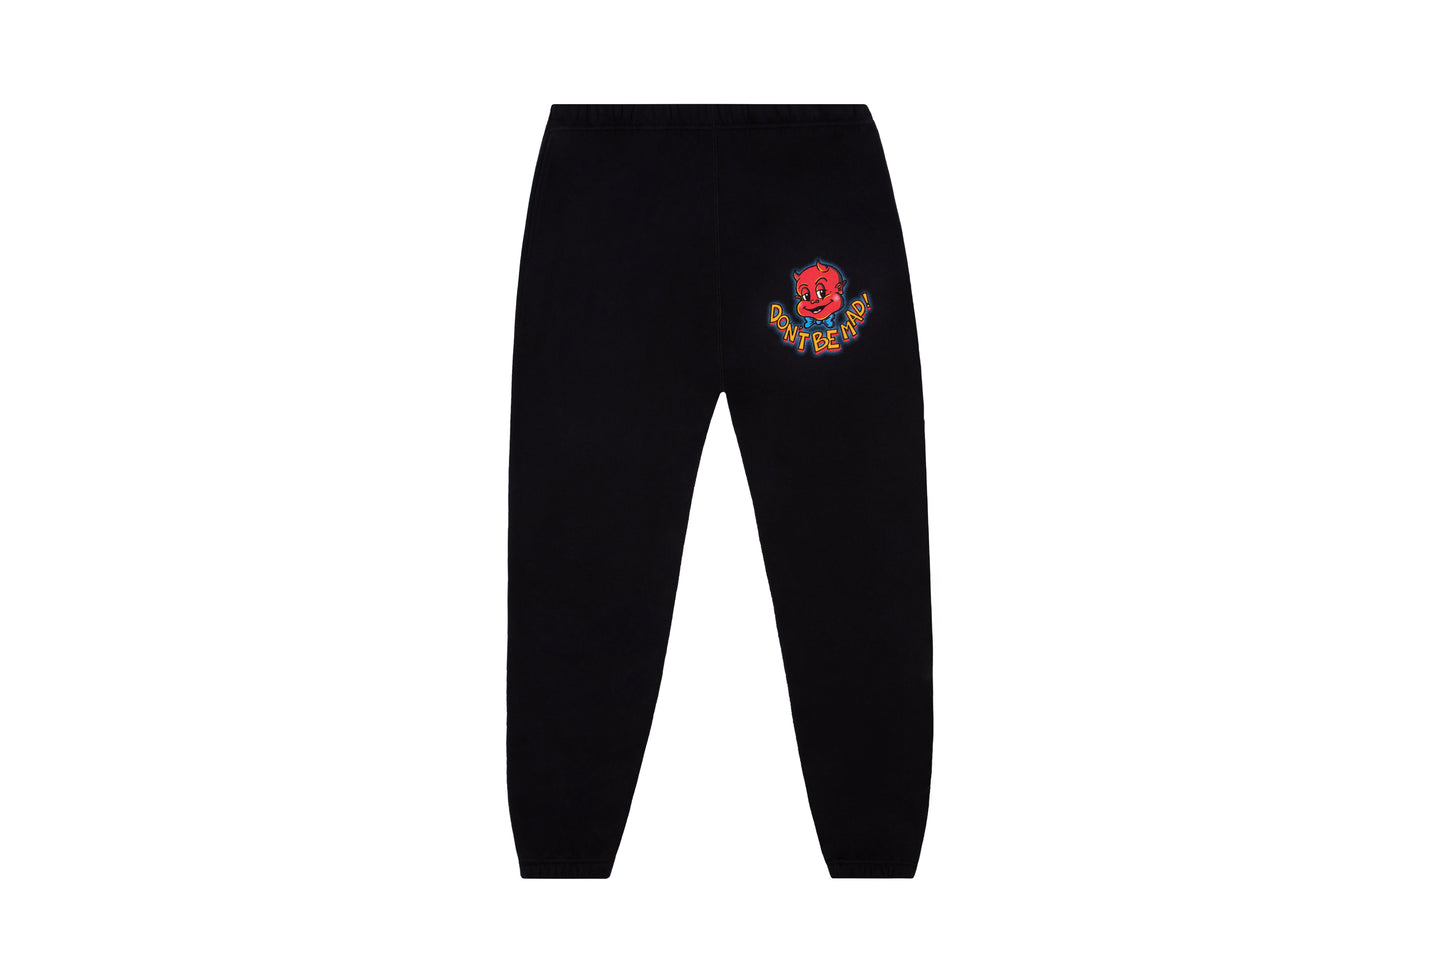 Smirk logo Sweatpants - Black